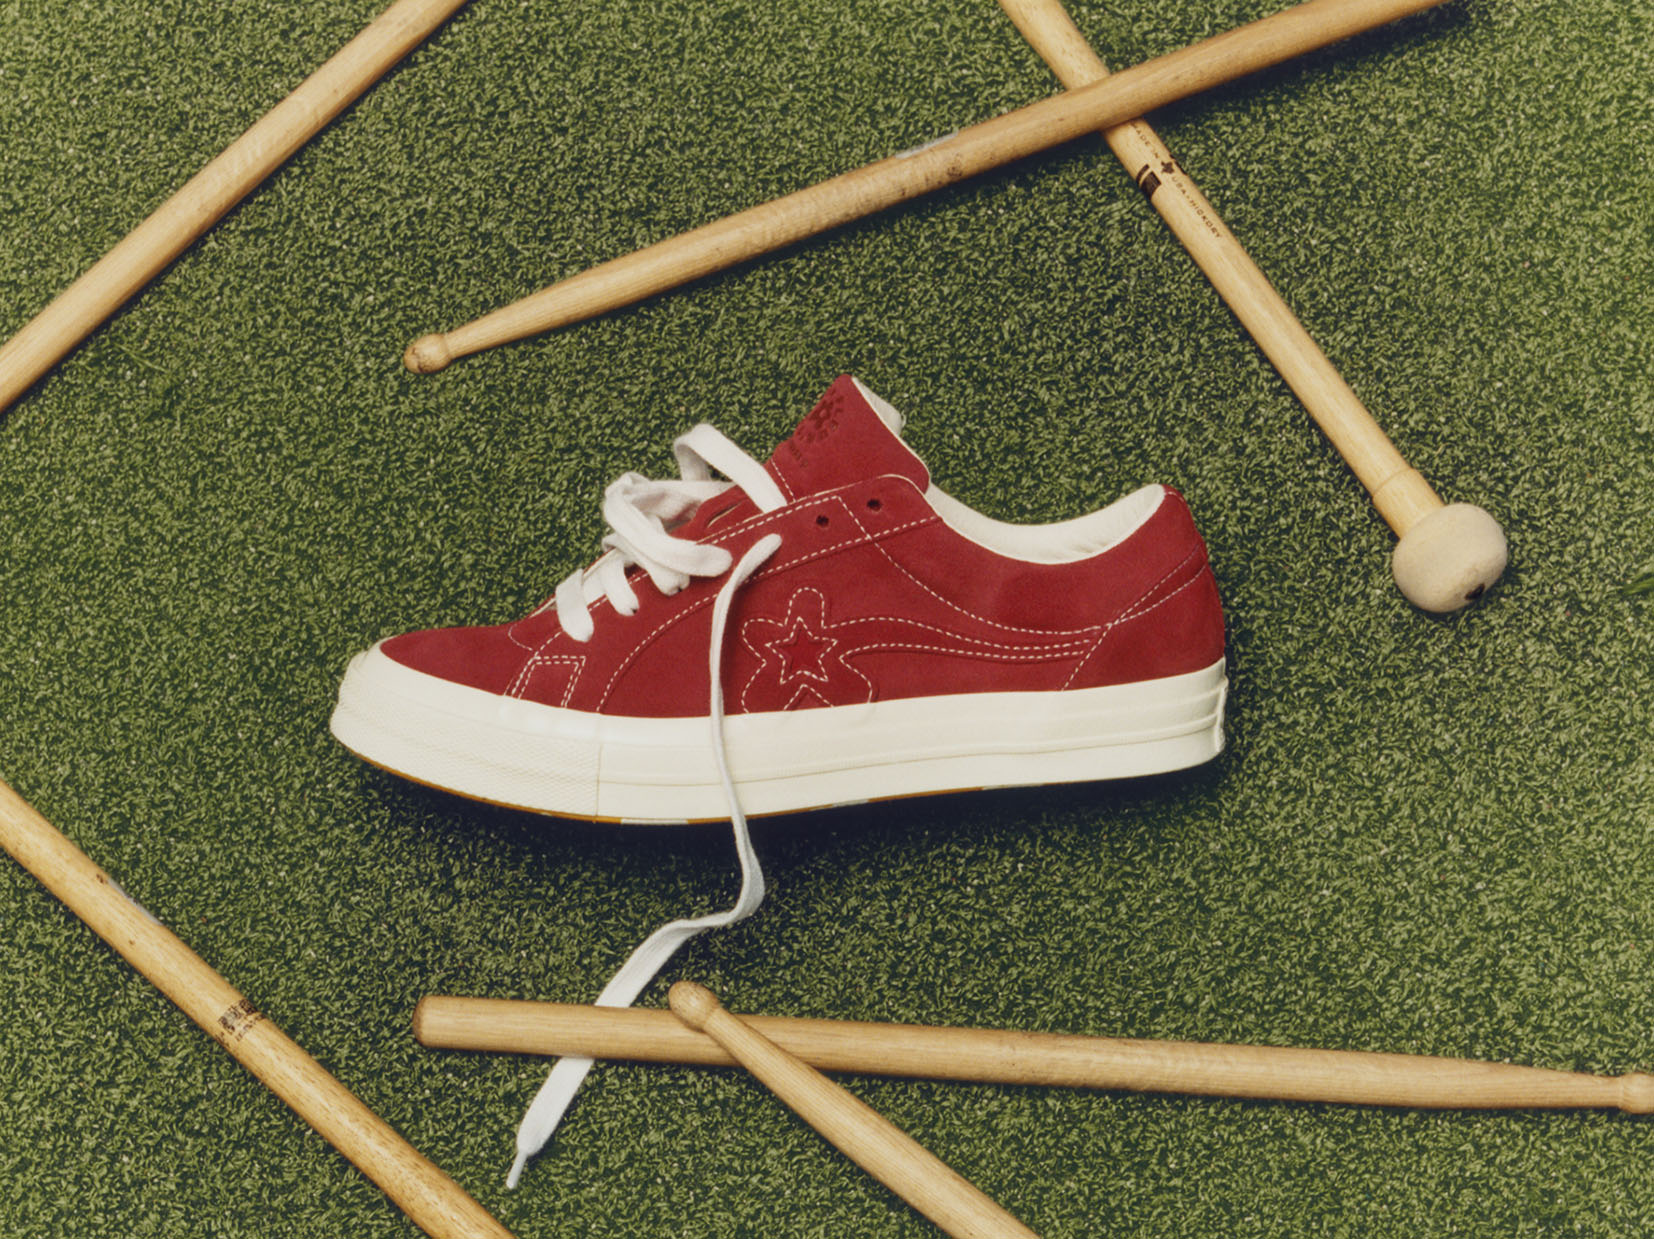 Top 10 red sneakers - Converse GOLF le FLEUR